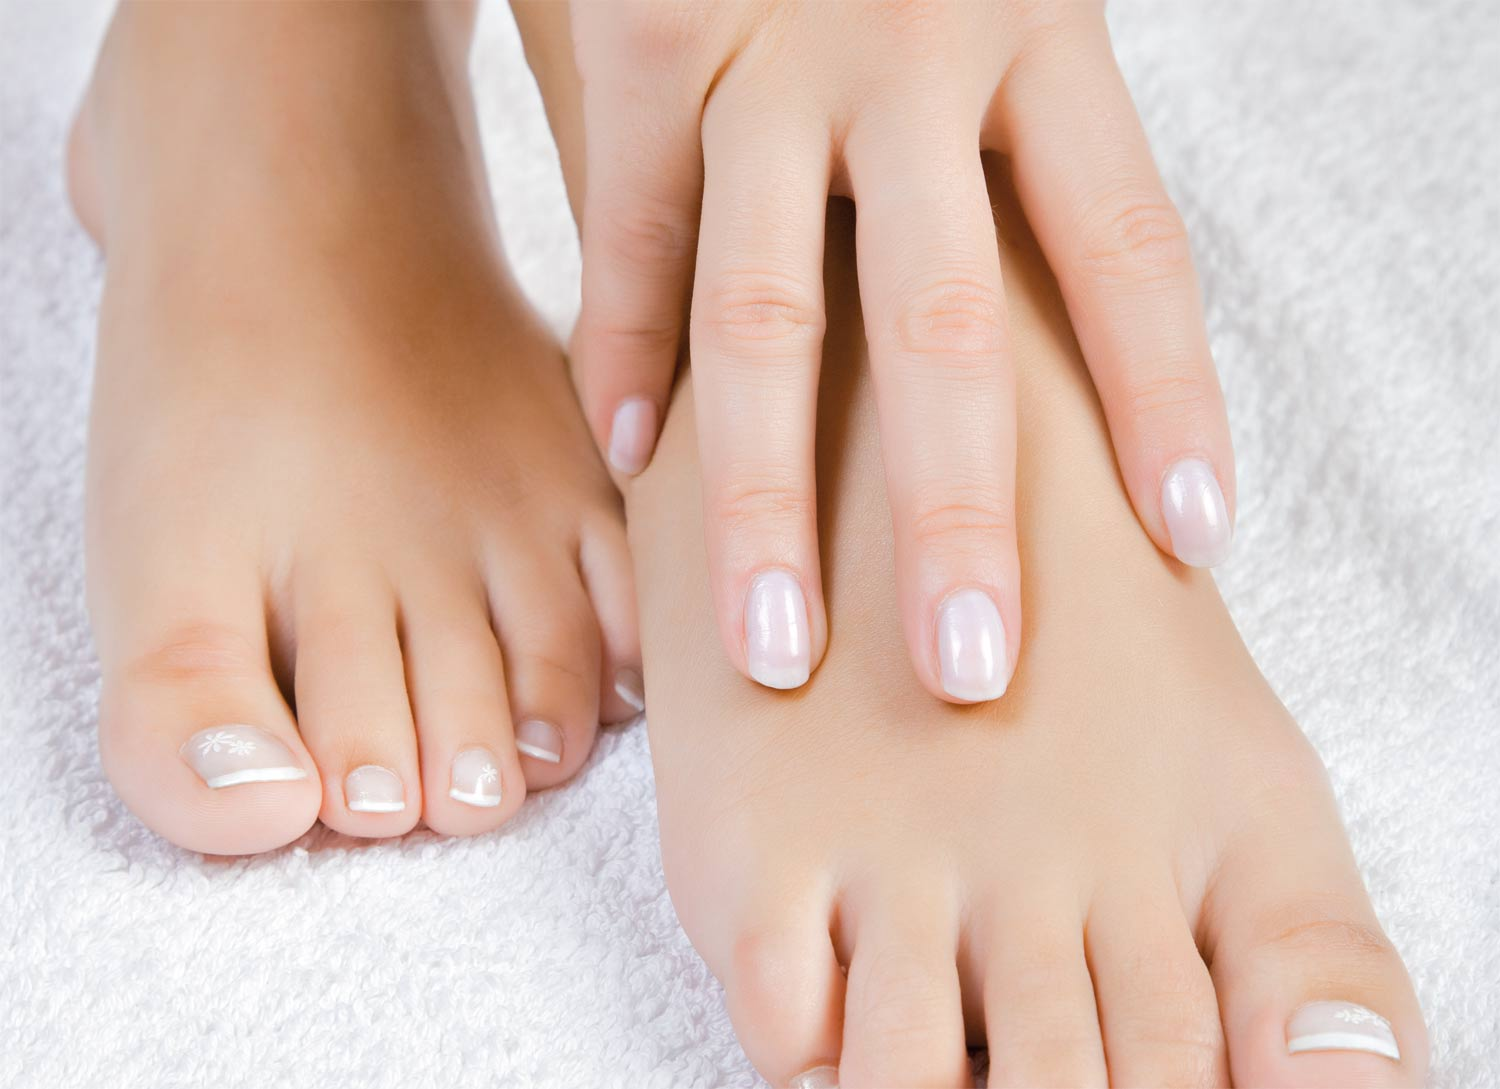 Want youthful hands and feet? Follow these 8 tips - Complete Wellbeing